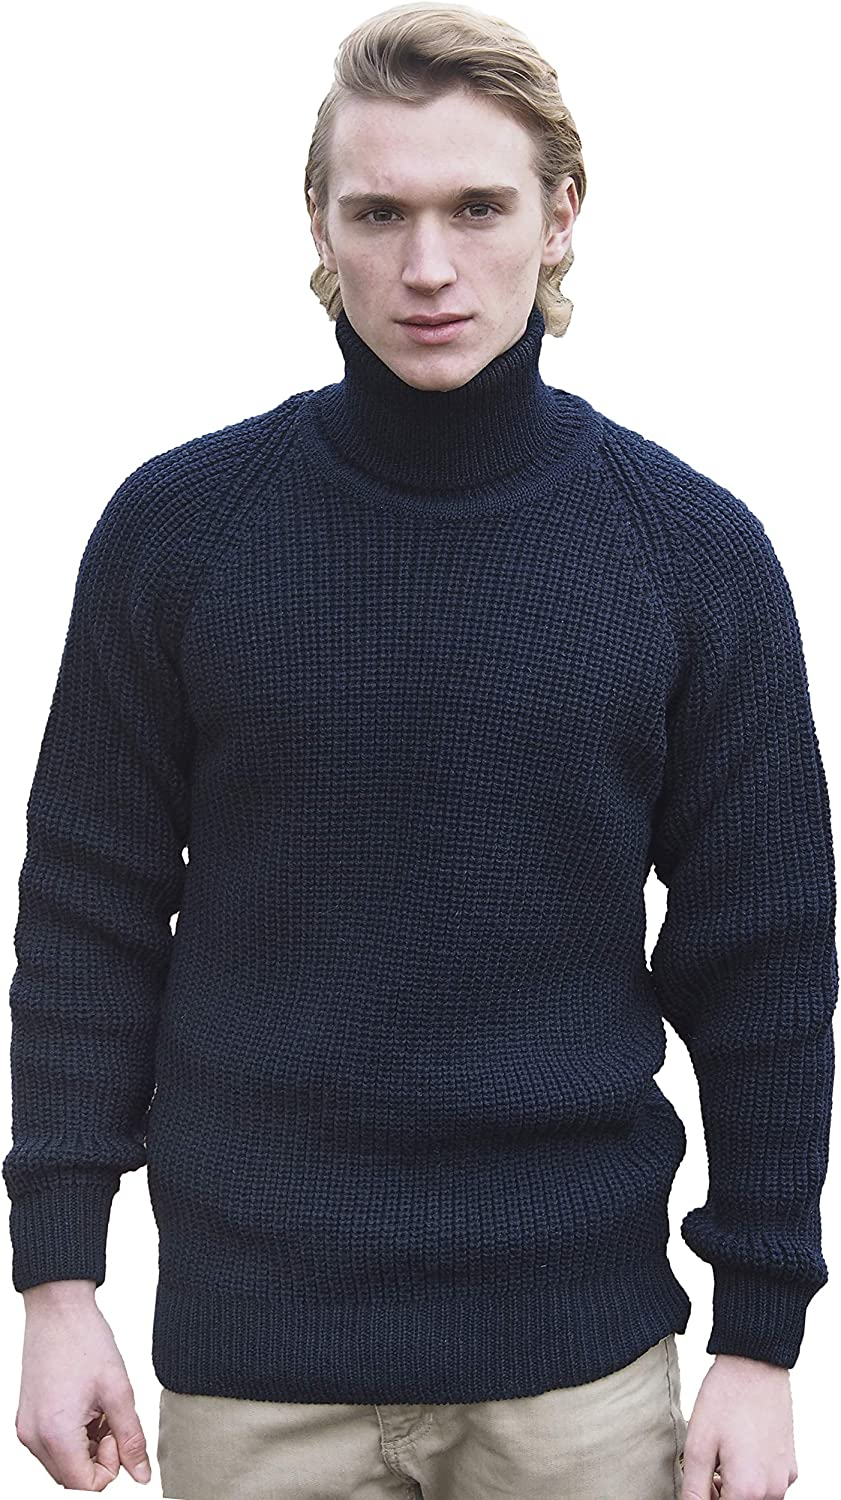 X-Future Mens Stylish Ribbed Cable Knit Turtleneck Long Sleeve Pullover Sweater